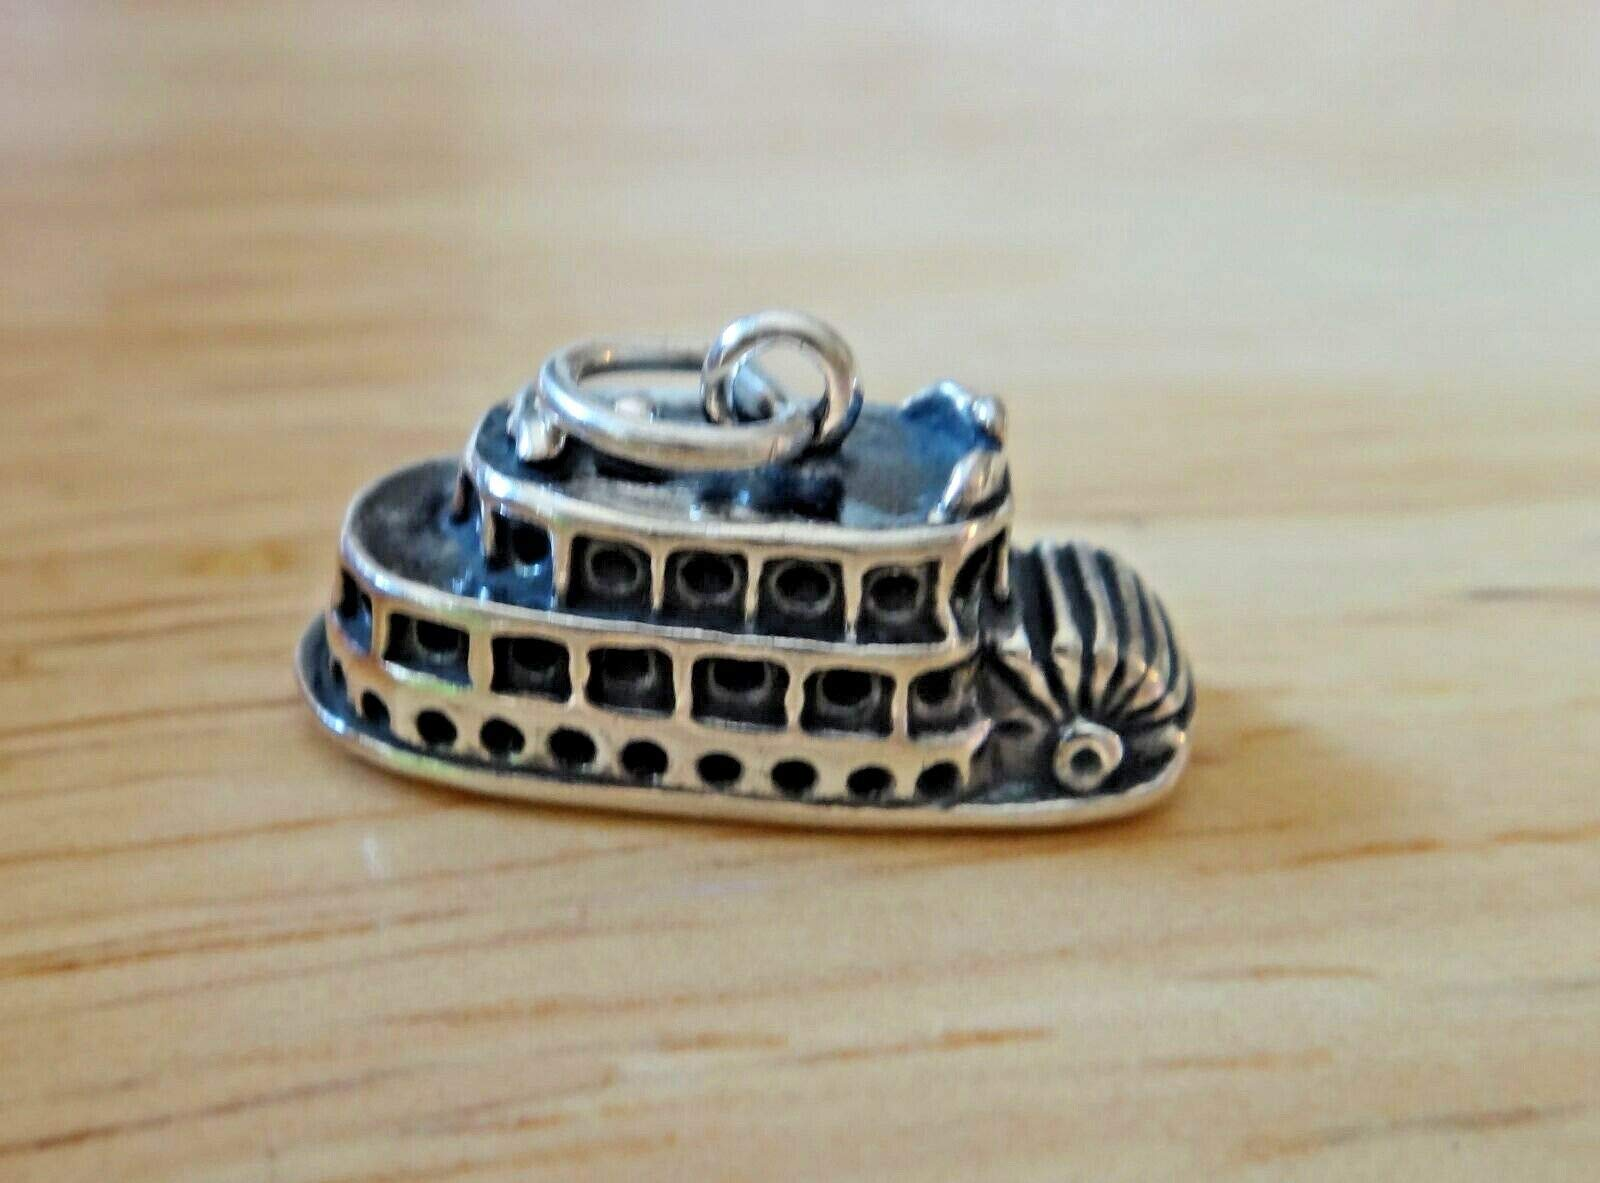 Sterling Silver 3D 18x19mm Mississippi River Paddle Boat Charm DIY Crafting by Wholesale Charms by Wholesale Charms